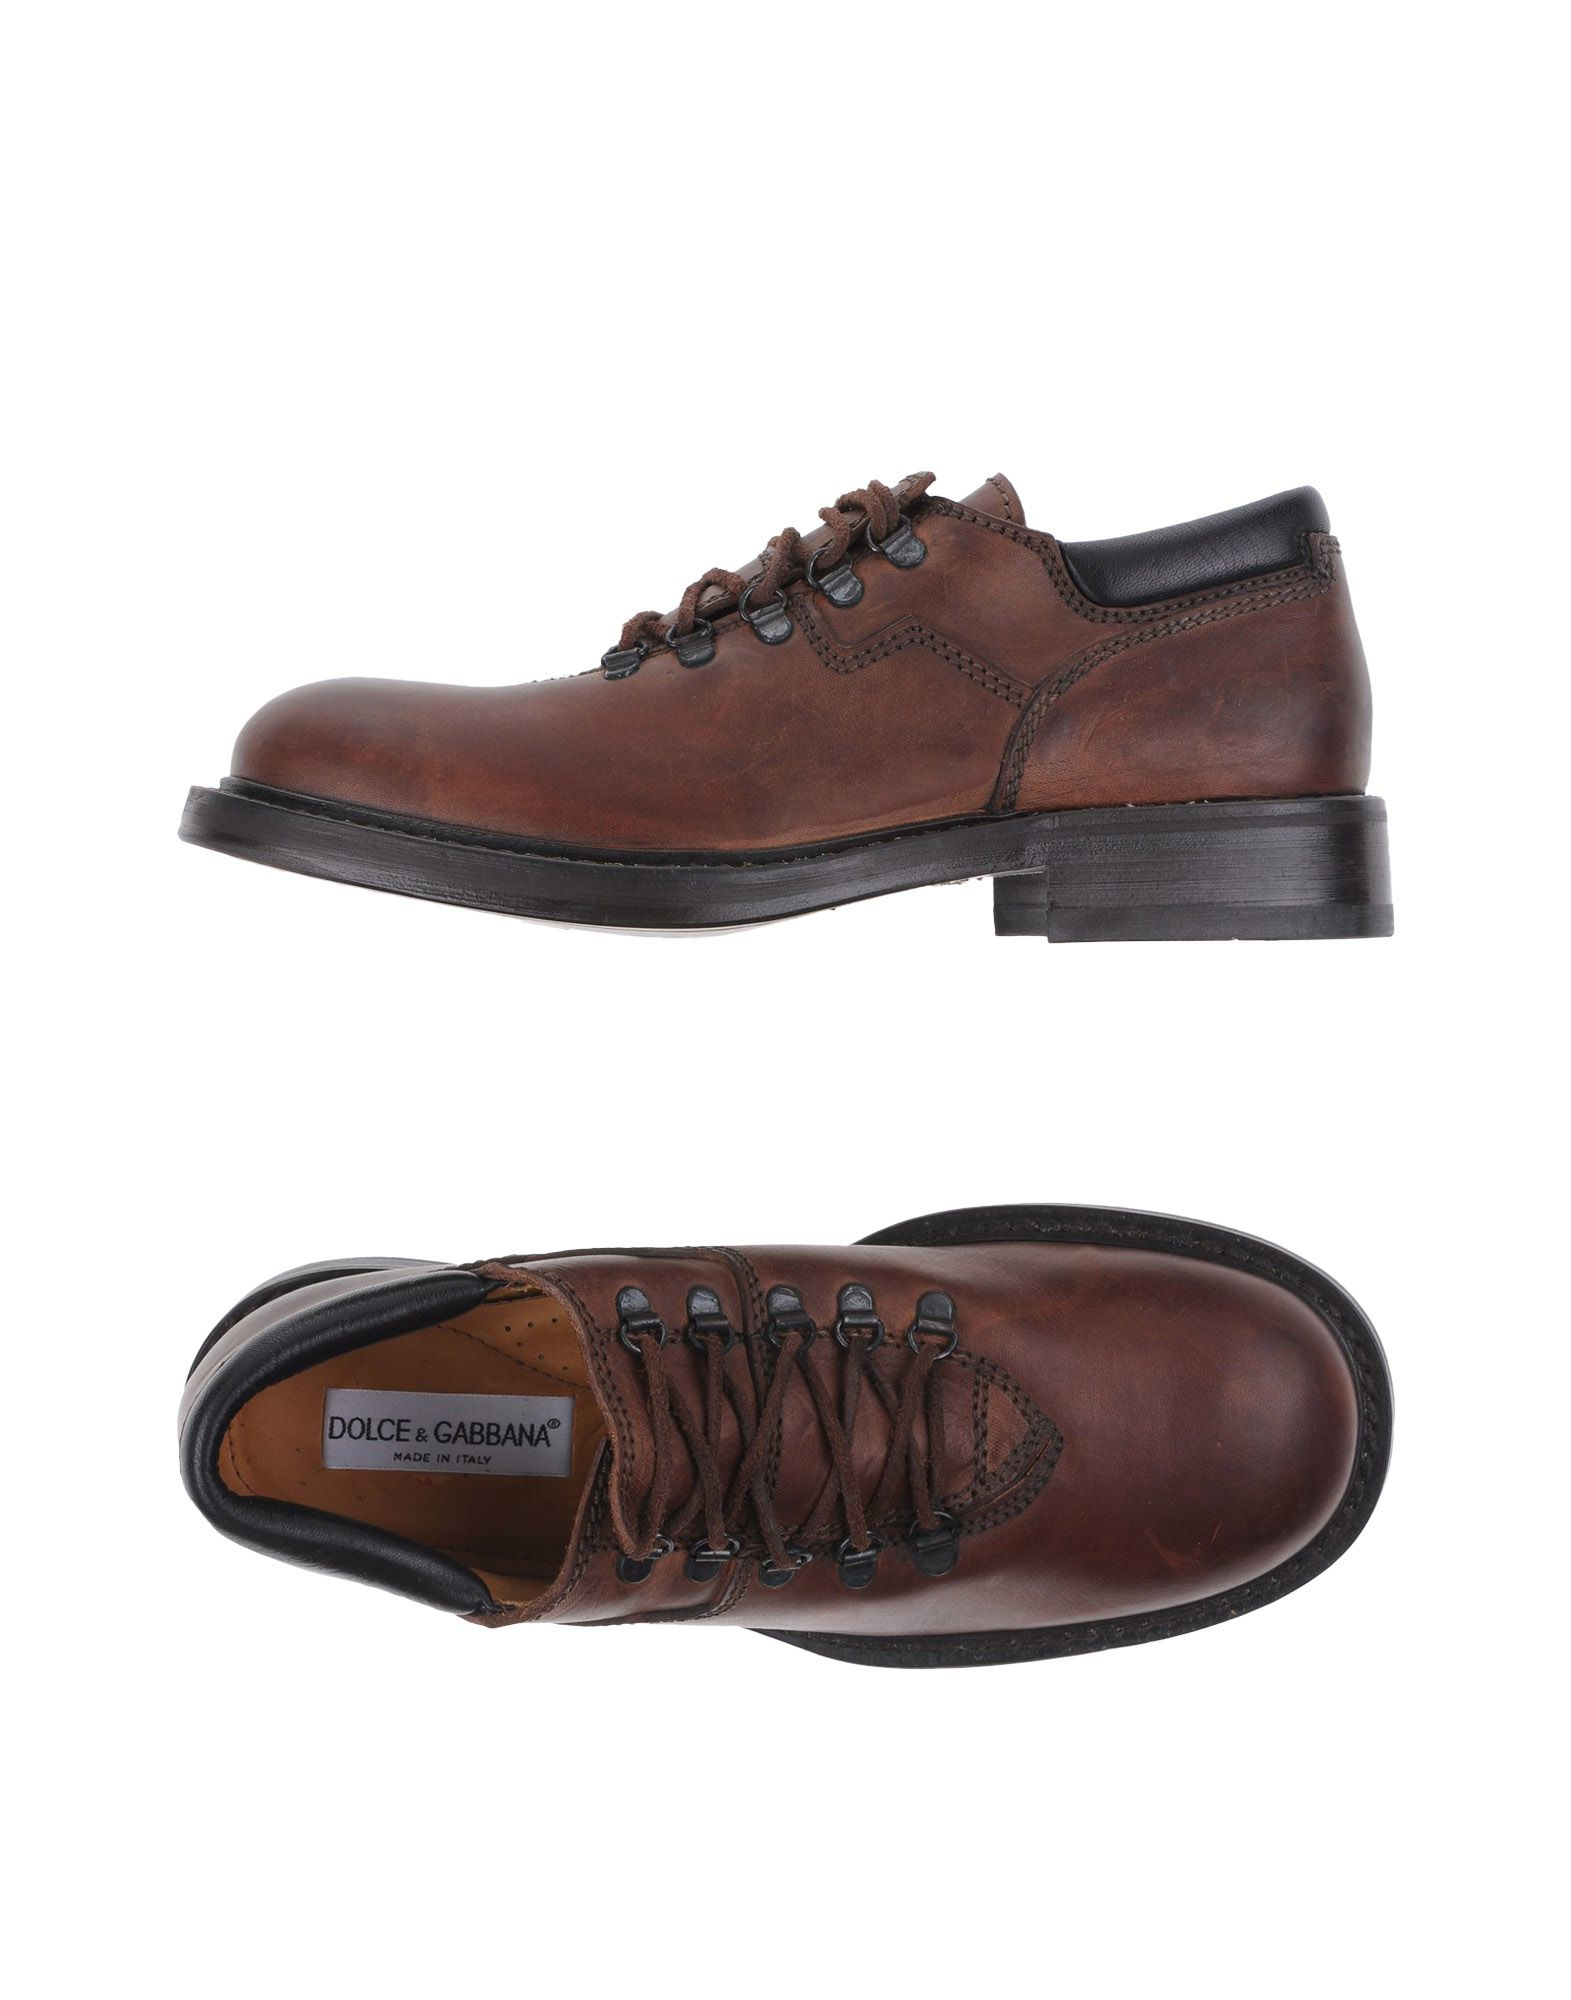 Dolce & gabbana Lace-up Shoes for Men